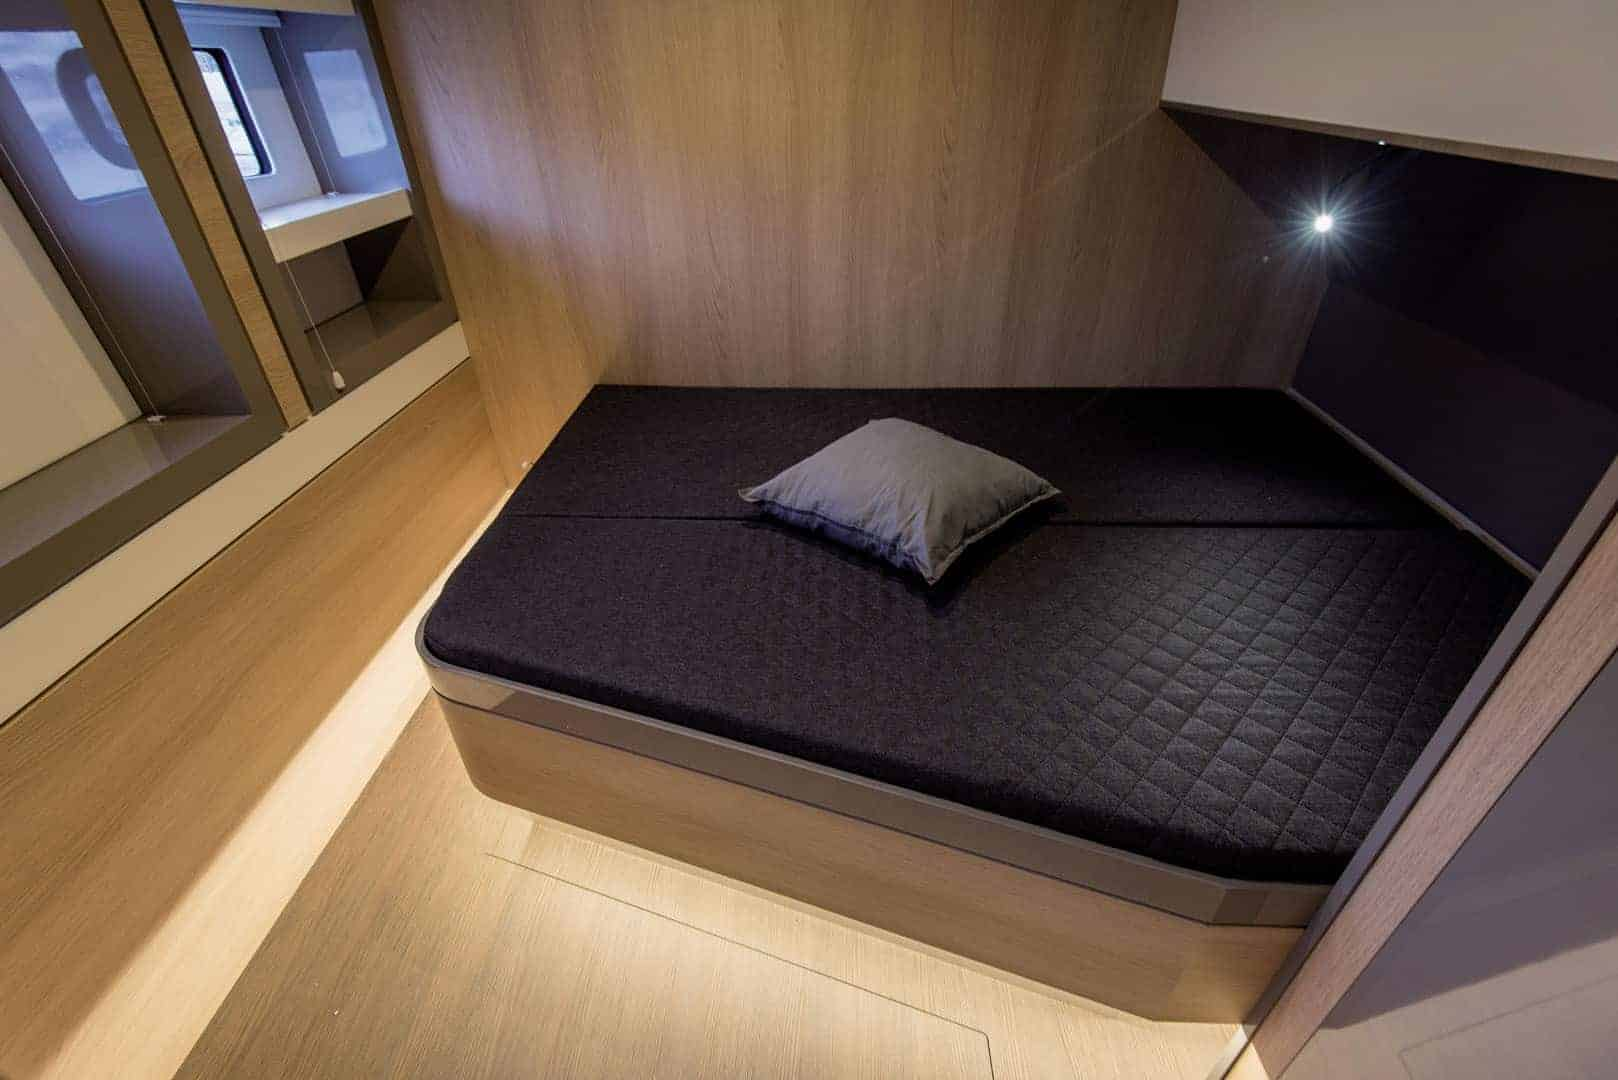 Luxurious bed in one of the cabins of the Bali 5.4